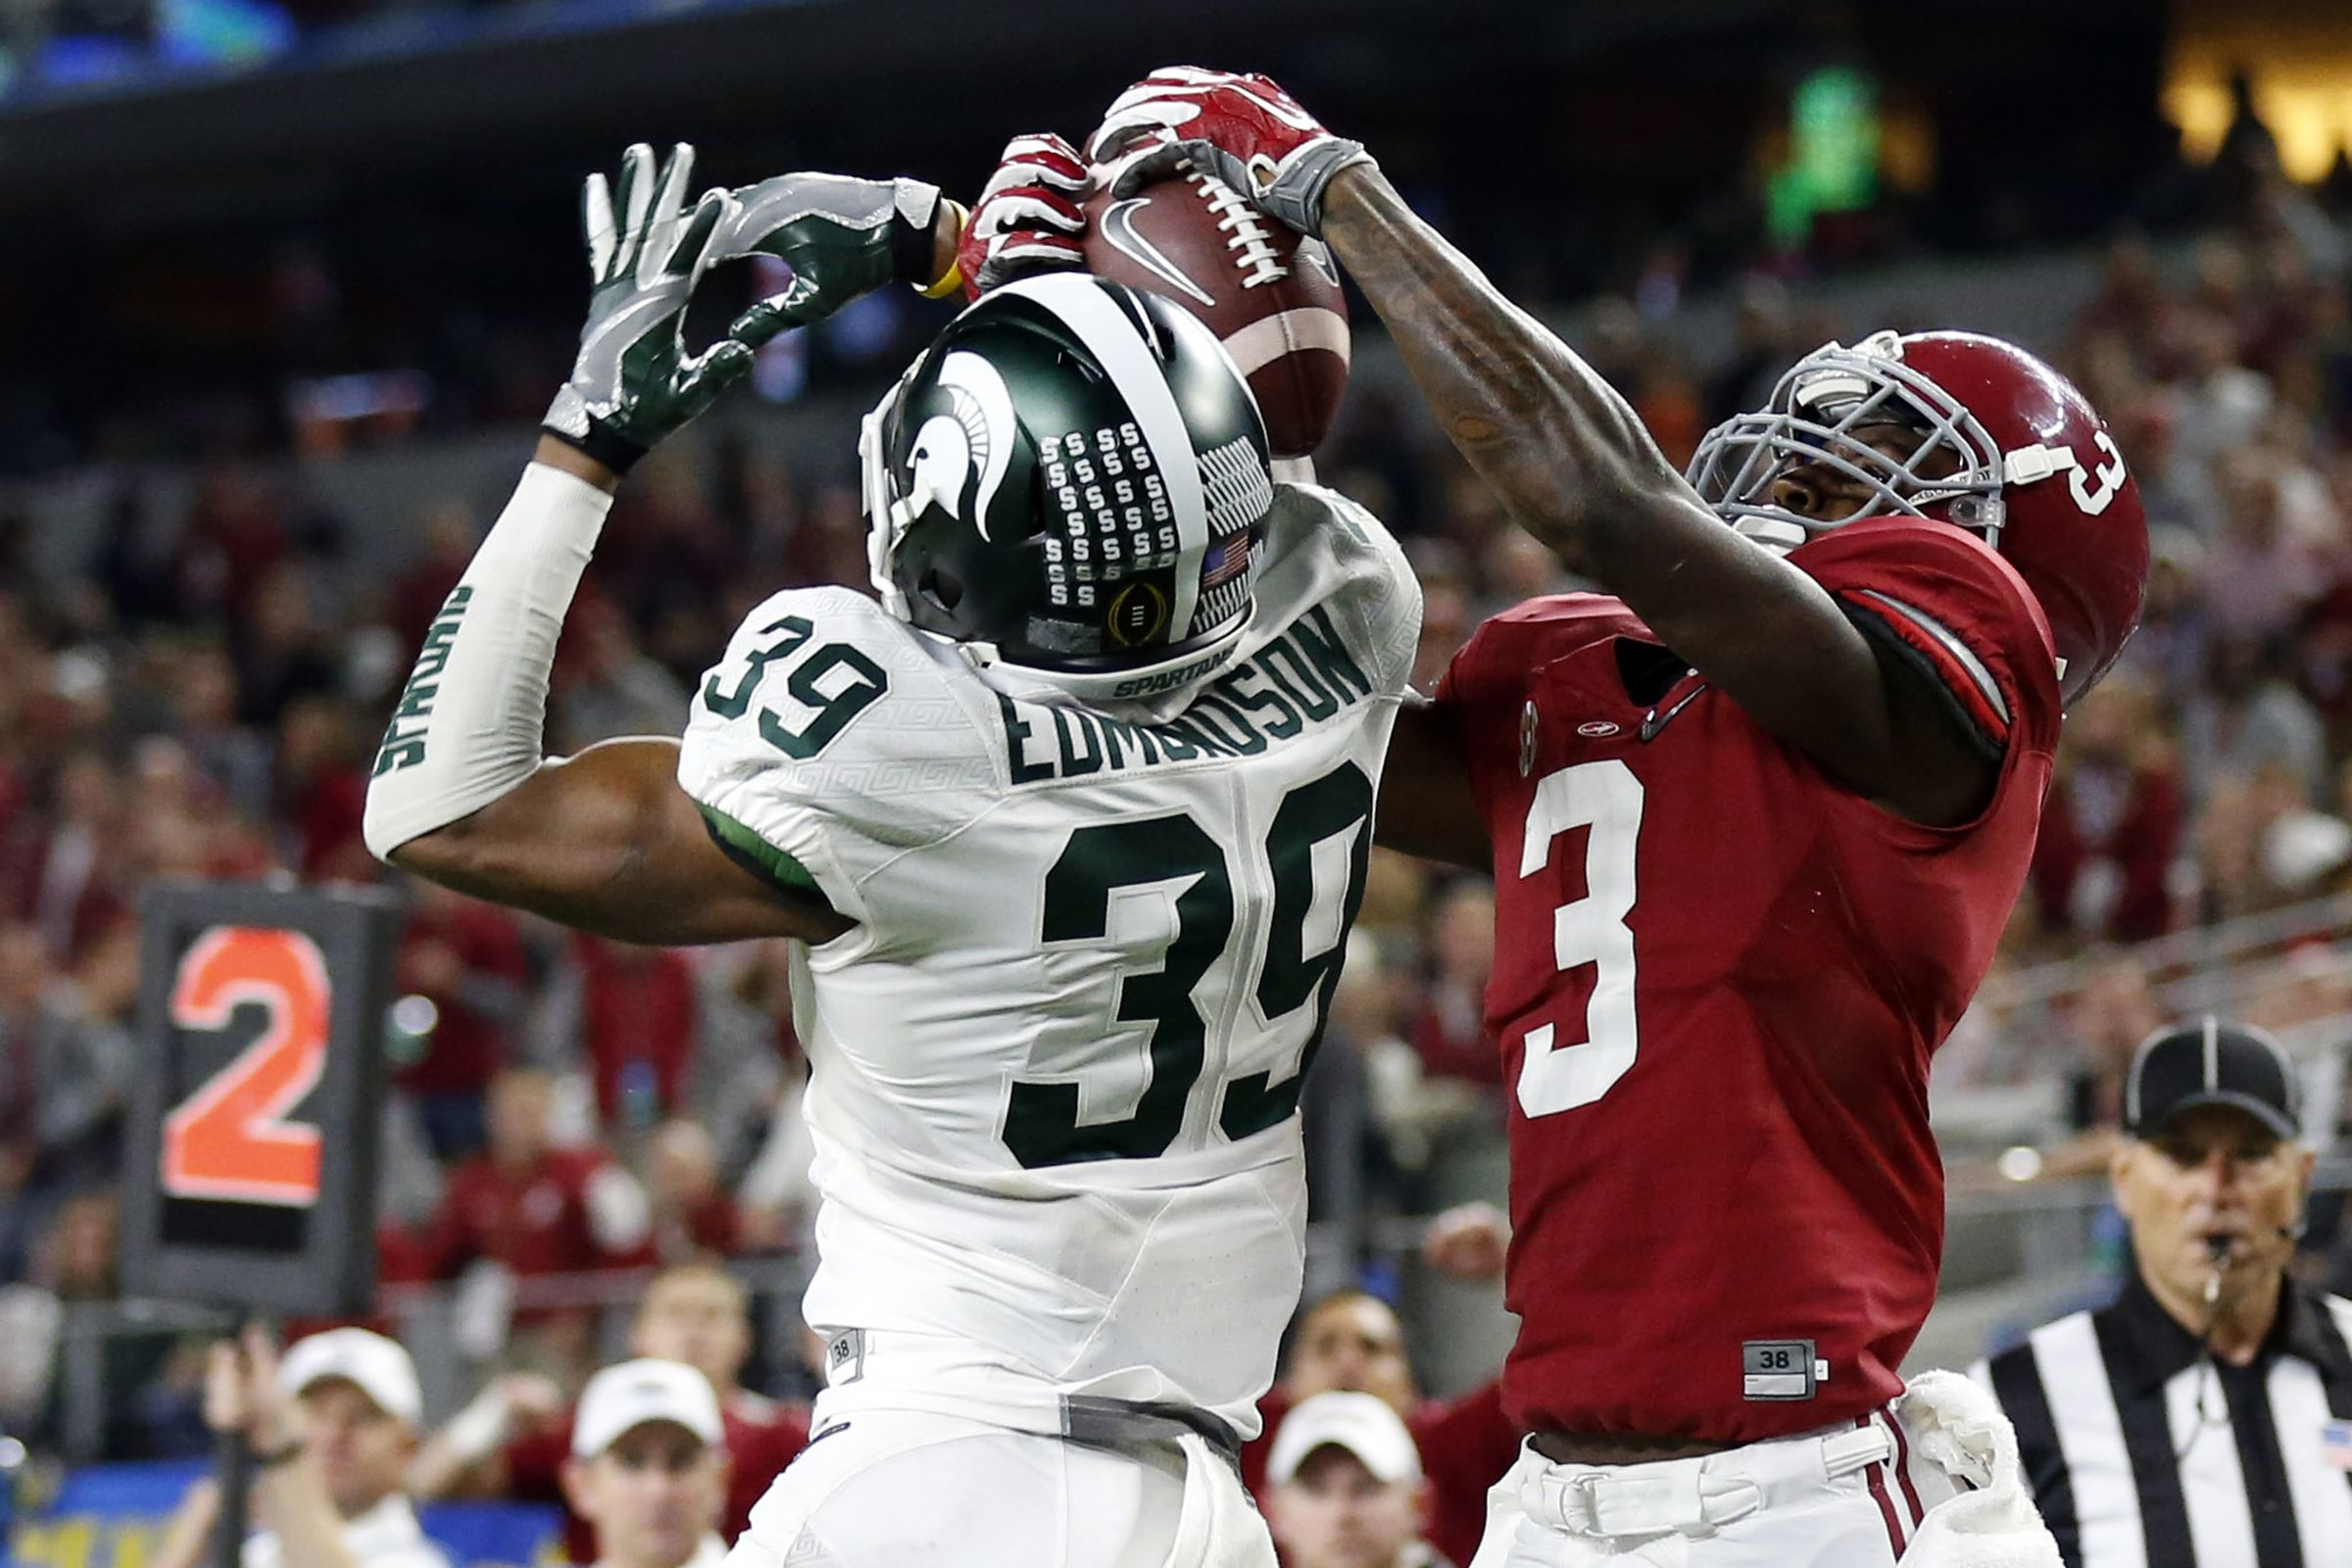 Michigan State Football 'Unfinished Business' rap is unbelievable